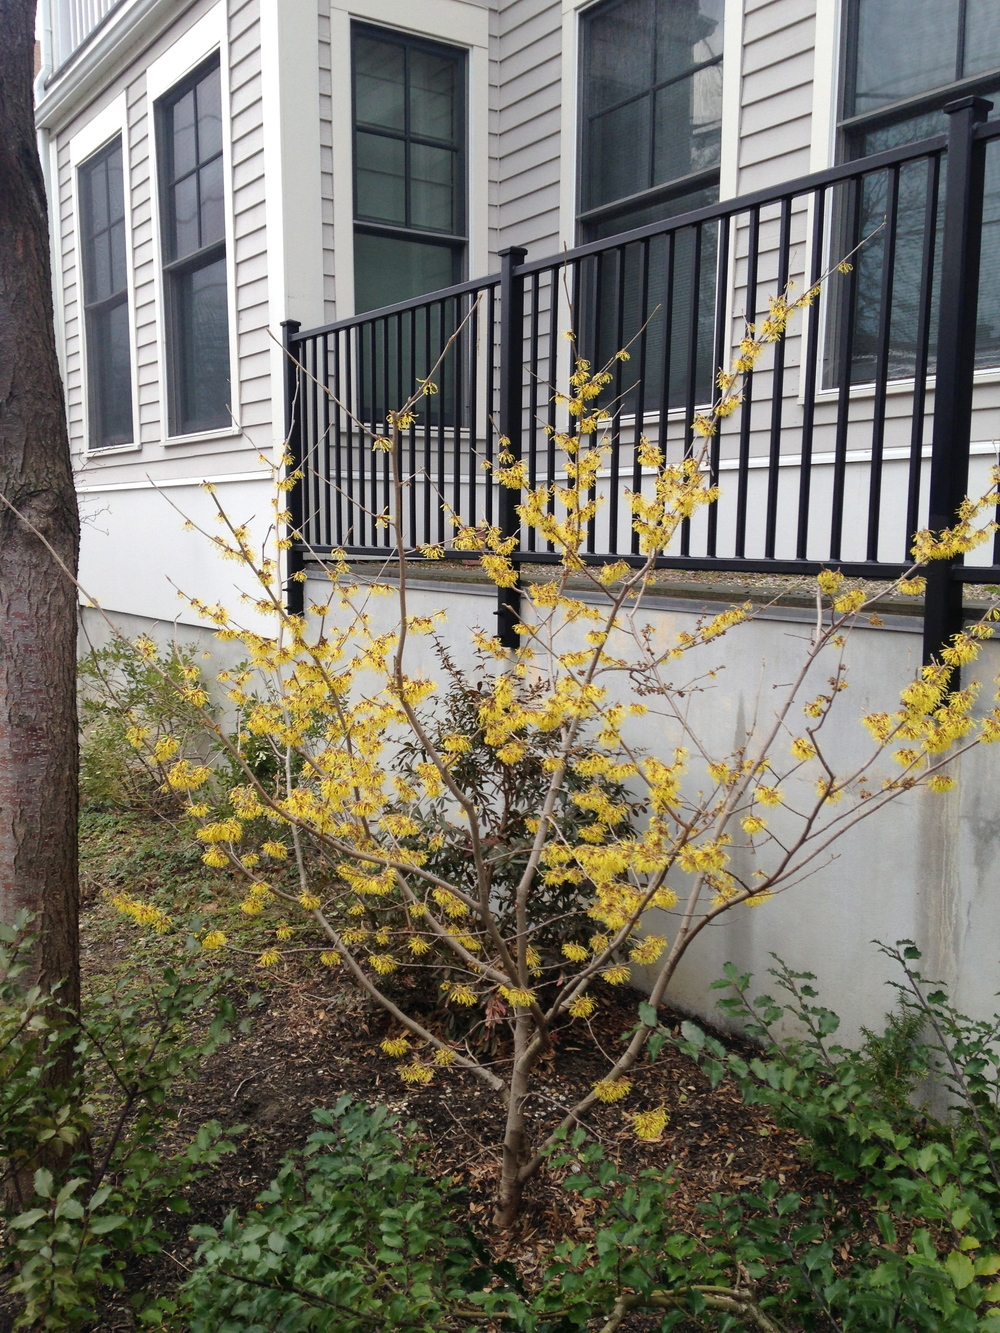 Hybrid witch hazel ( Hamamelis x intermedia ) in full bloom in Somerville, MA this week.